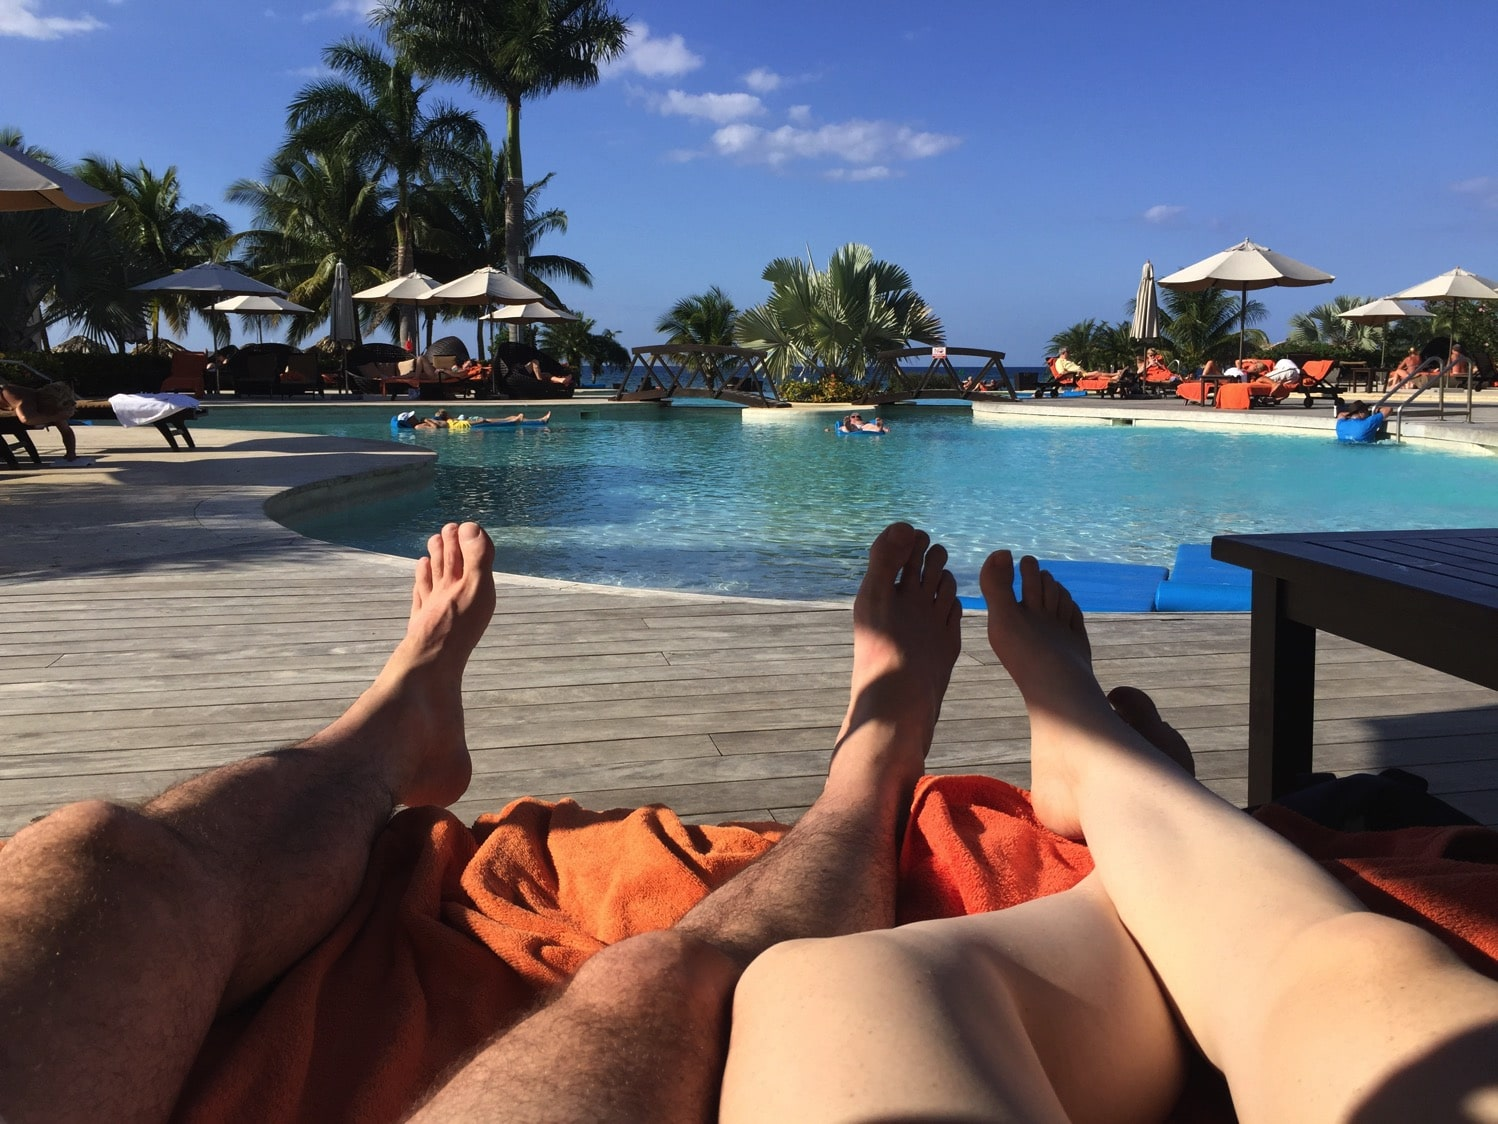 Jamaica Mon | Mommy and Me Monday